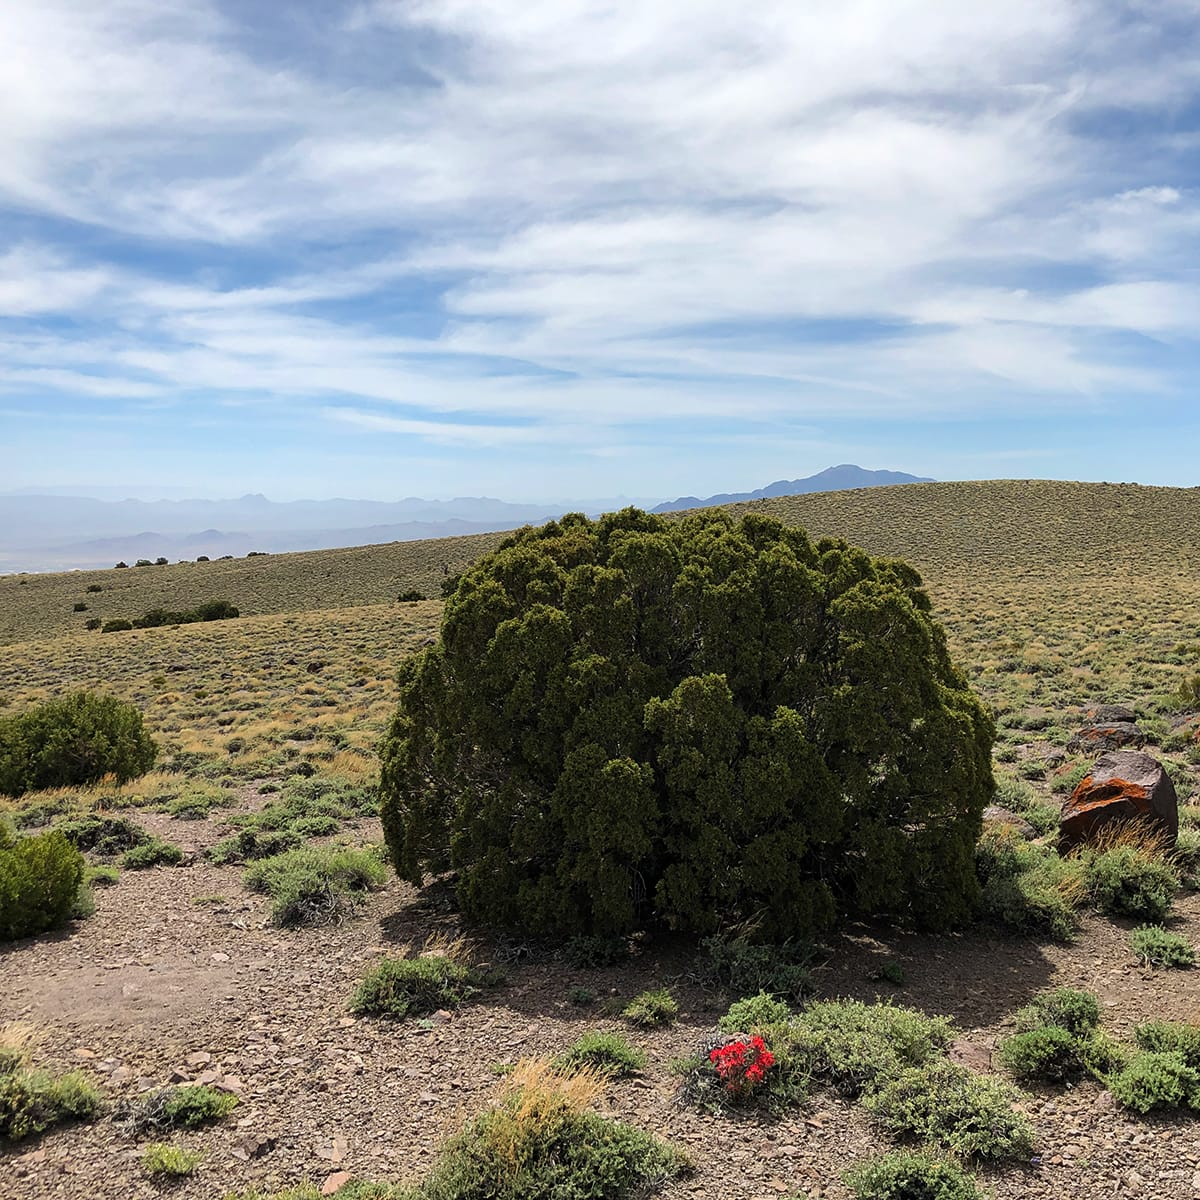 A very round juniper on top of a 8000-ft mountain